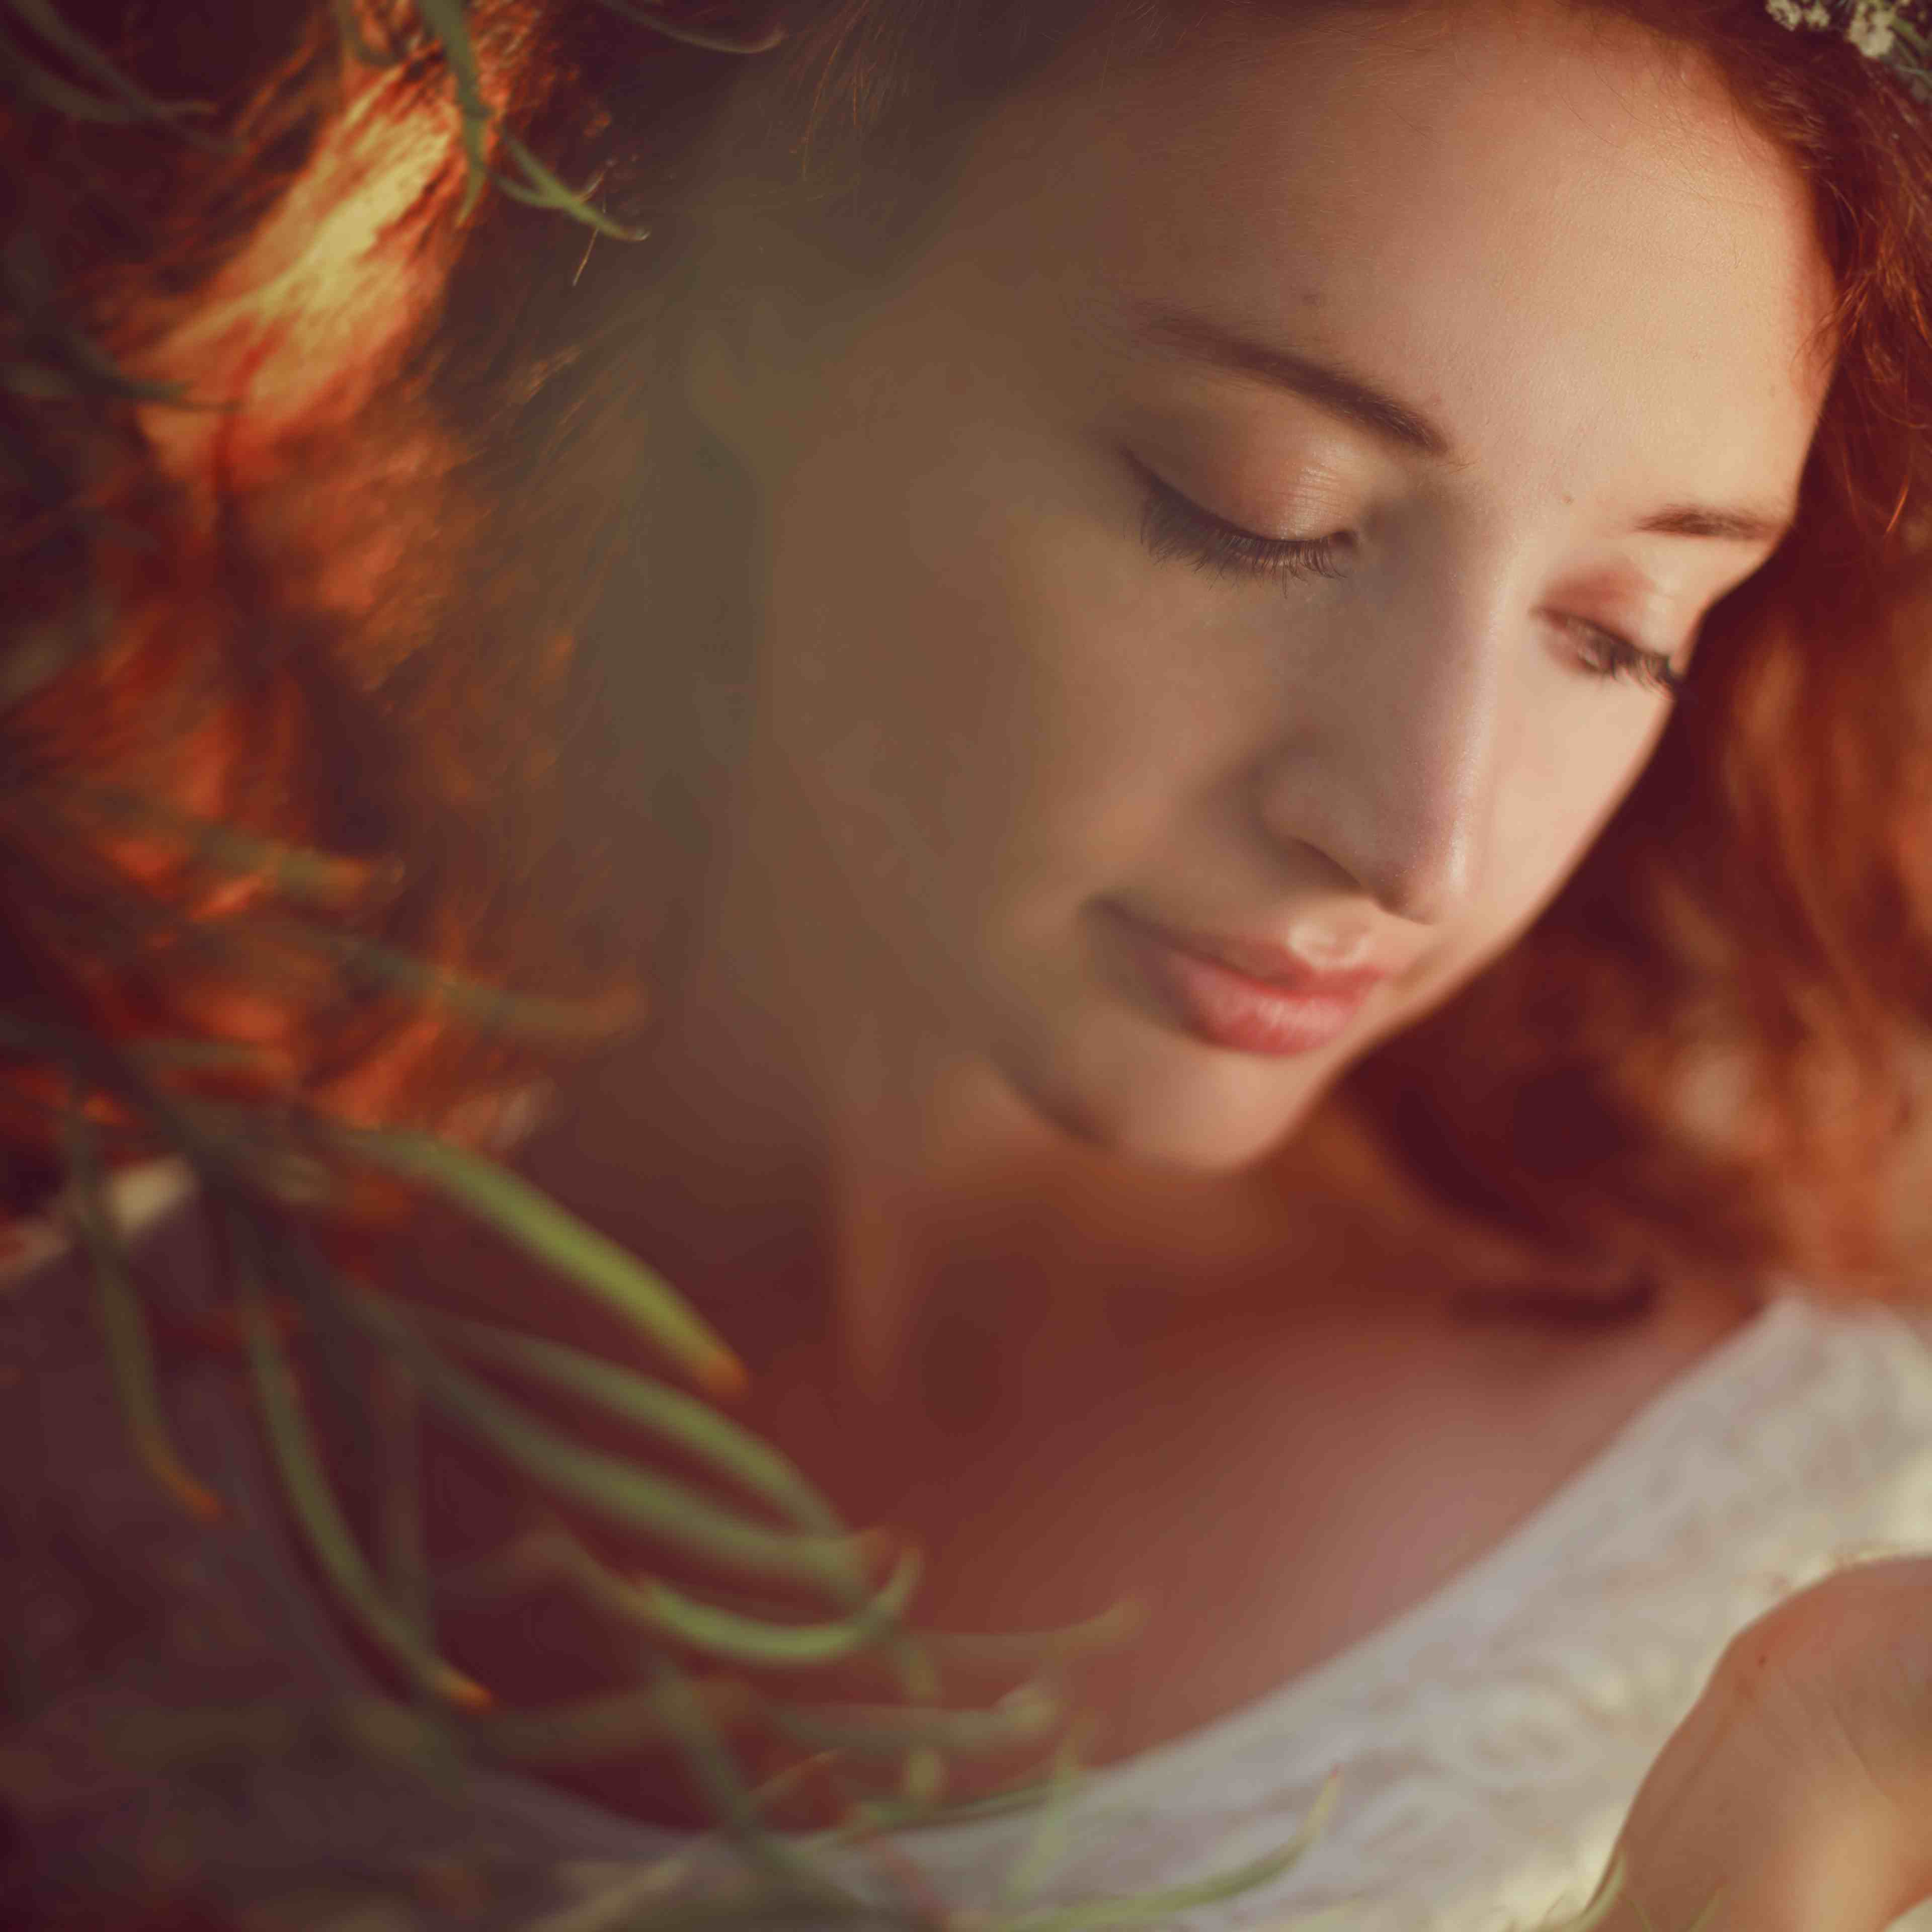 Redhead in white with flower crown looks down